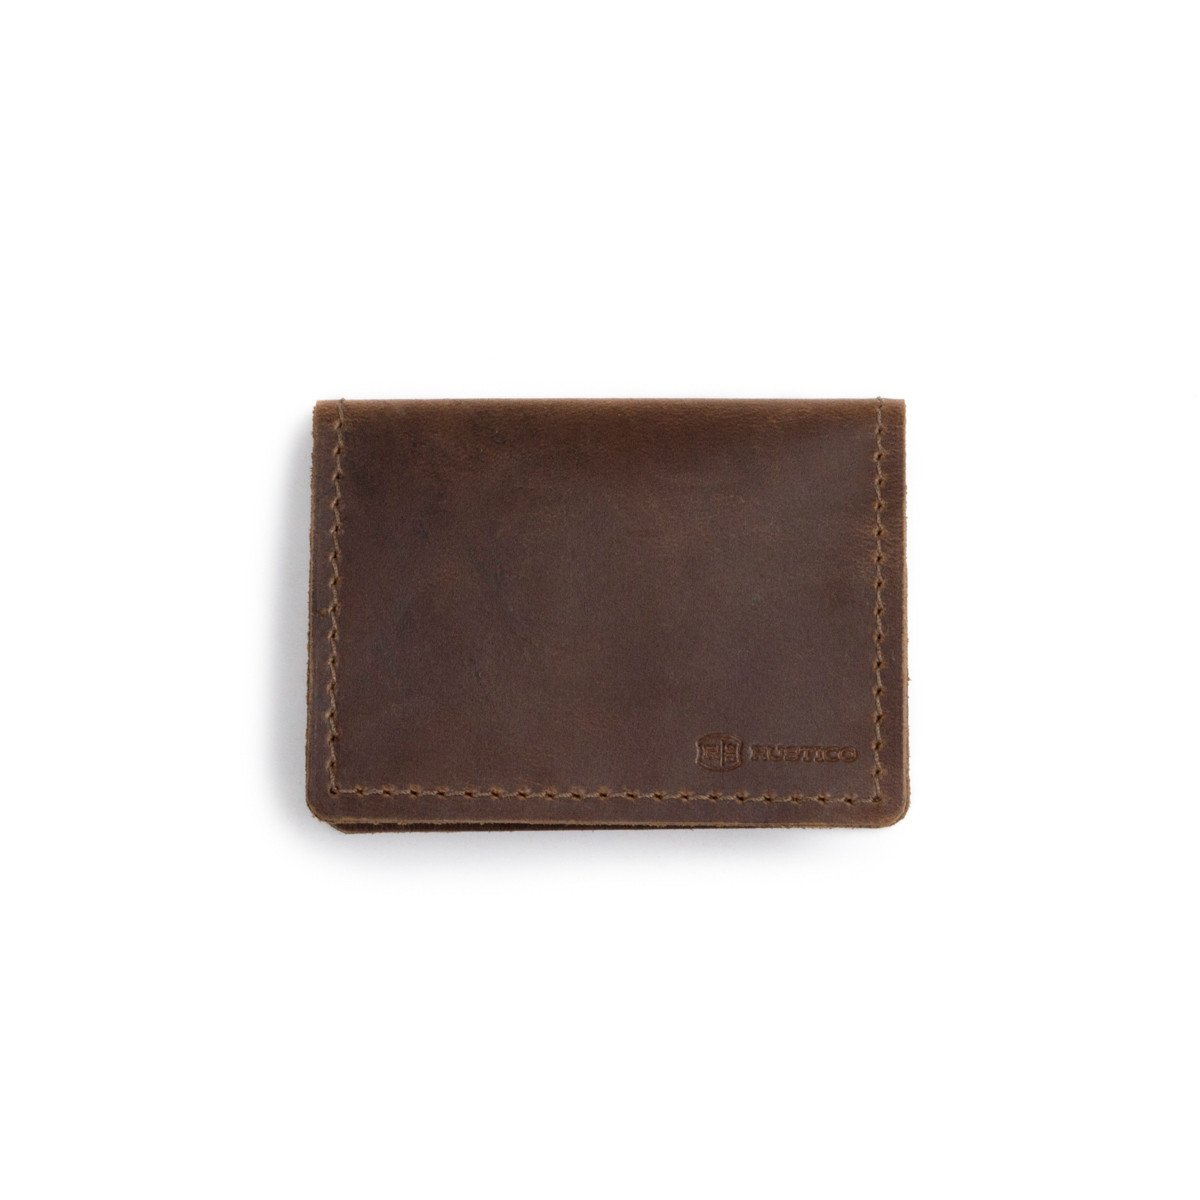 Globetrotter Leather Wallet